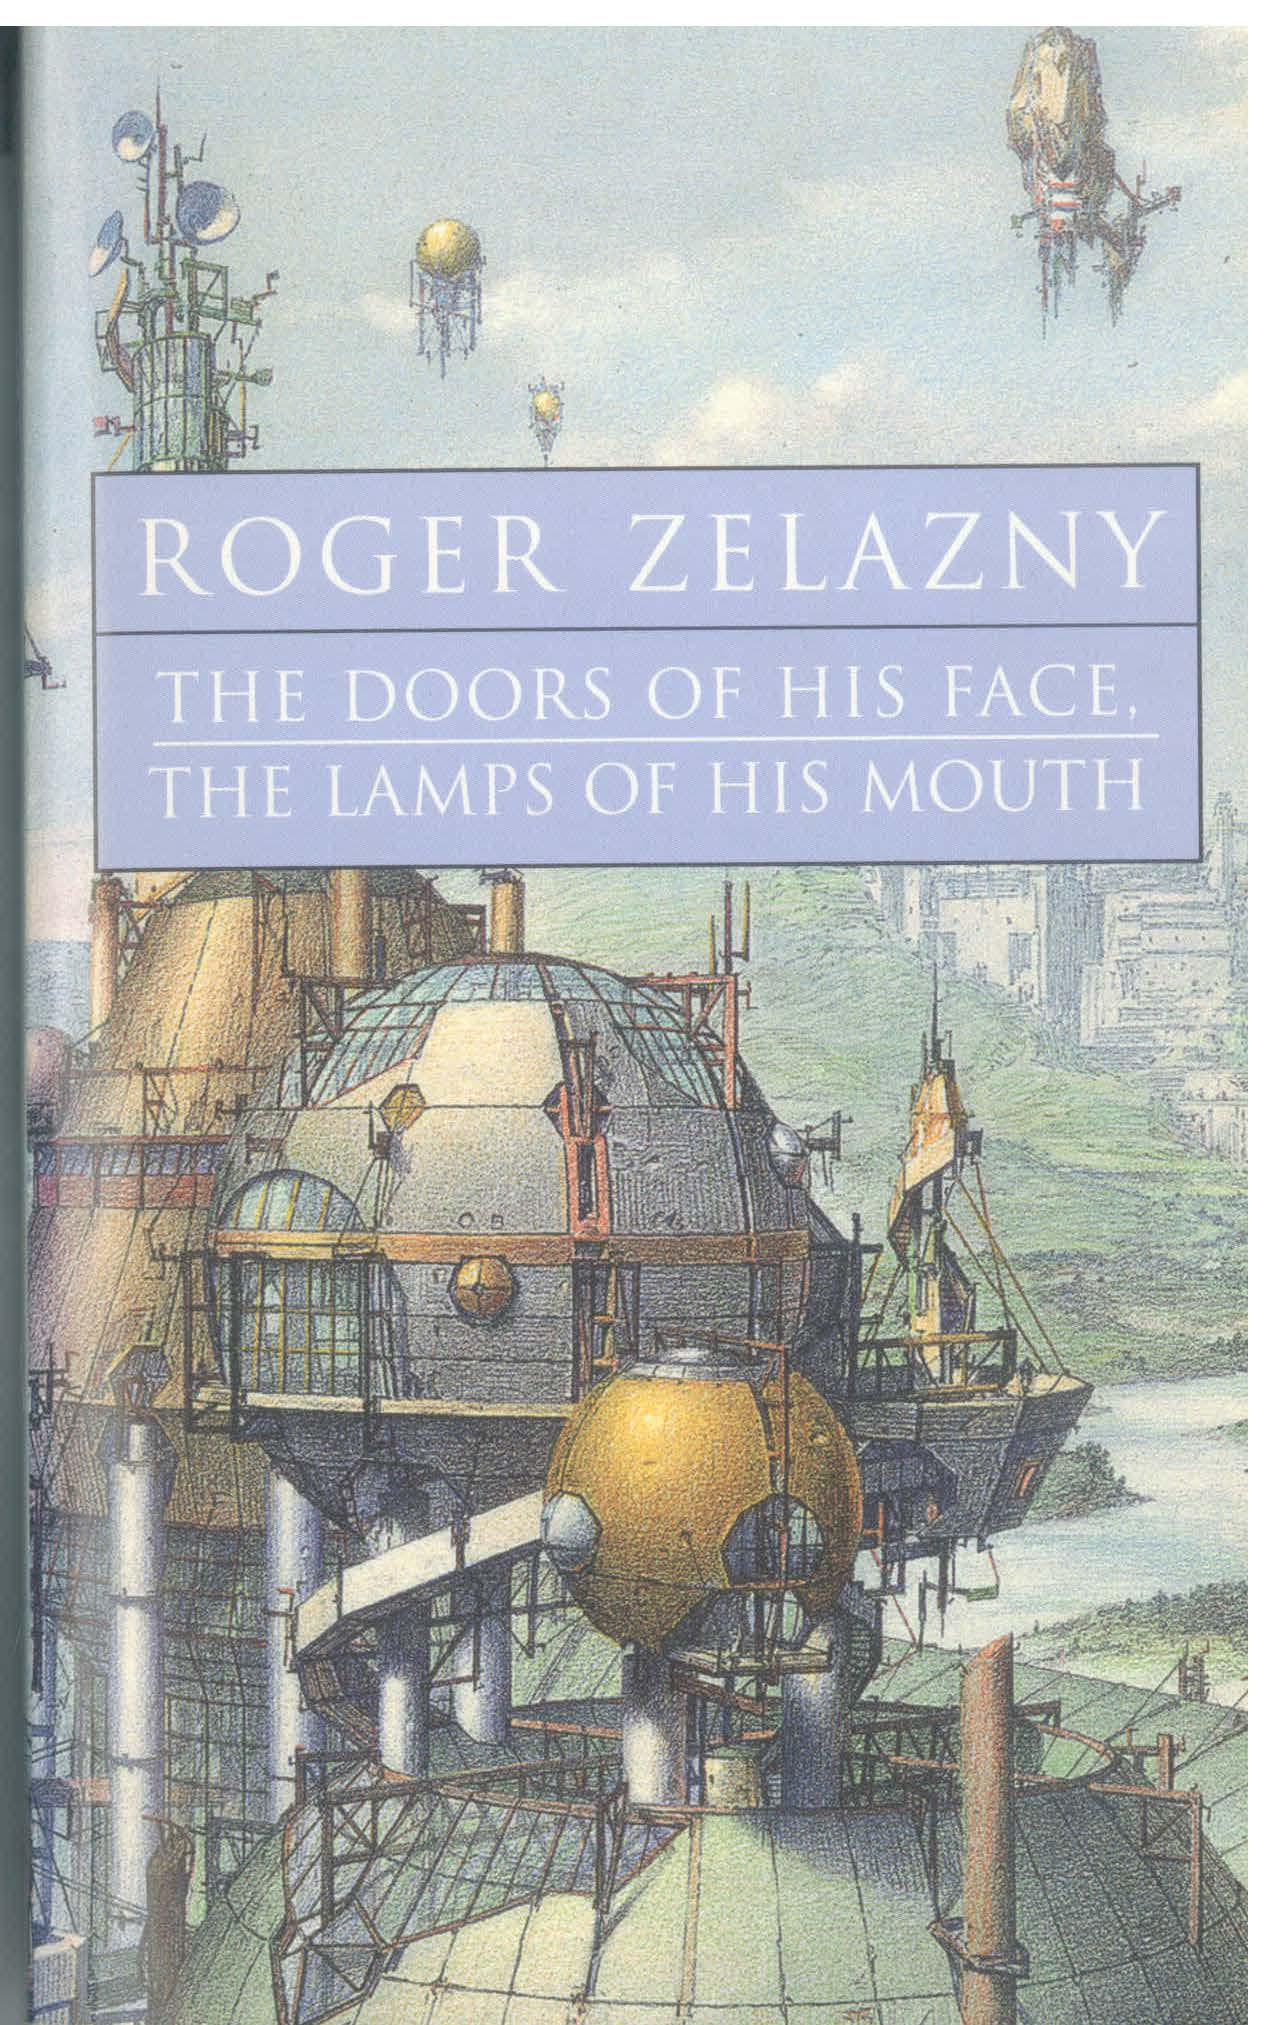 Lebbeus Woods. The New City. 1992.  Cover page for Roger Zelazny. The Door of His Face, The Lamps of His Mouth. New York: ibooks, 2001. (c) Estate of Lebbeus Woods